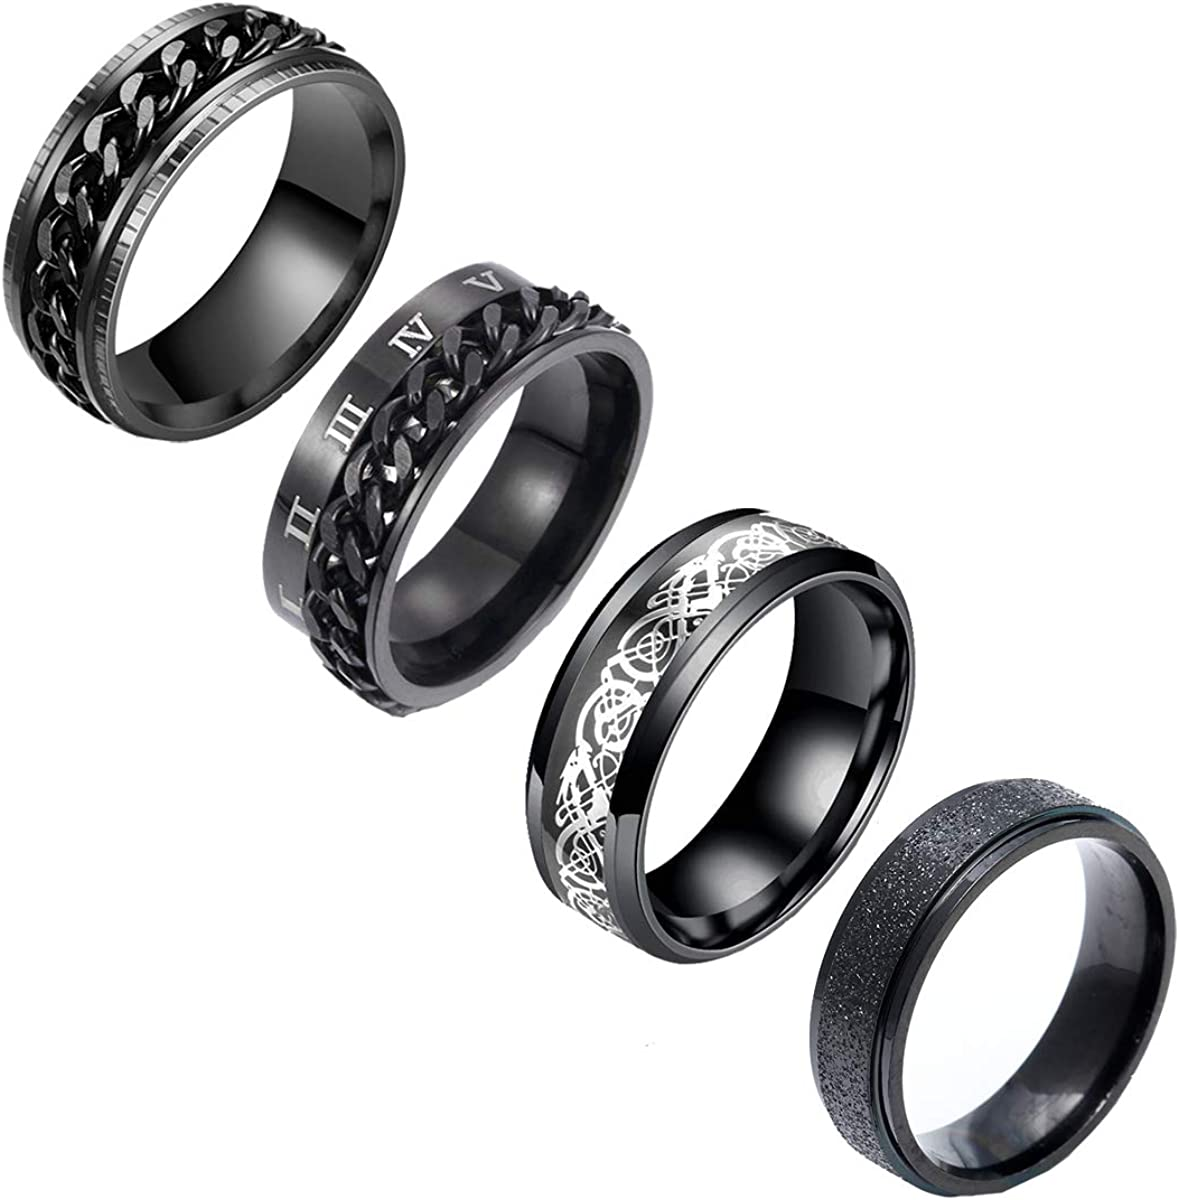 nylry 4Pcs Black Stainless Steel Fidget Spinner Rings Set for Men Women Roman Numeral Ring Matte Chain Cool Relieving Anxiety Ring Wedding Promise Band Size 6-12